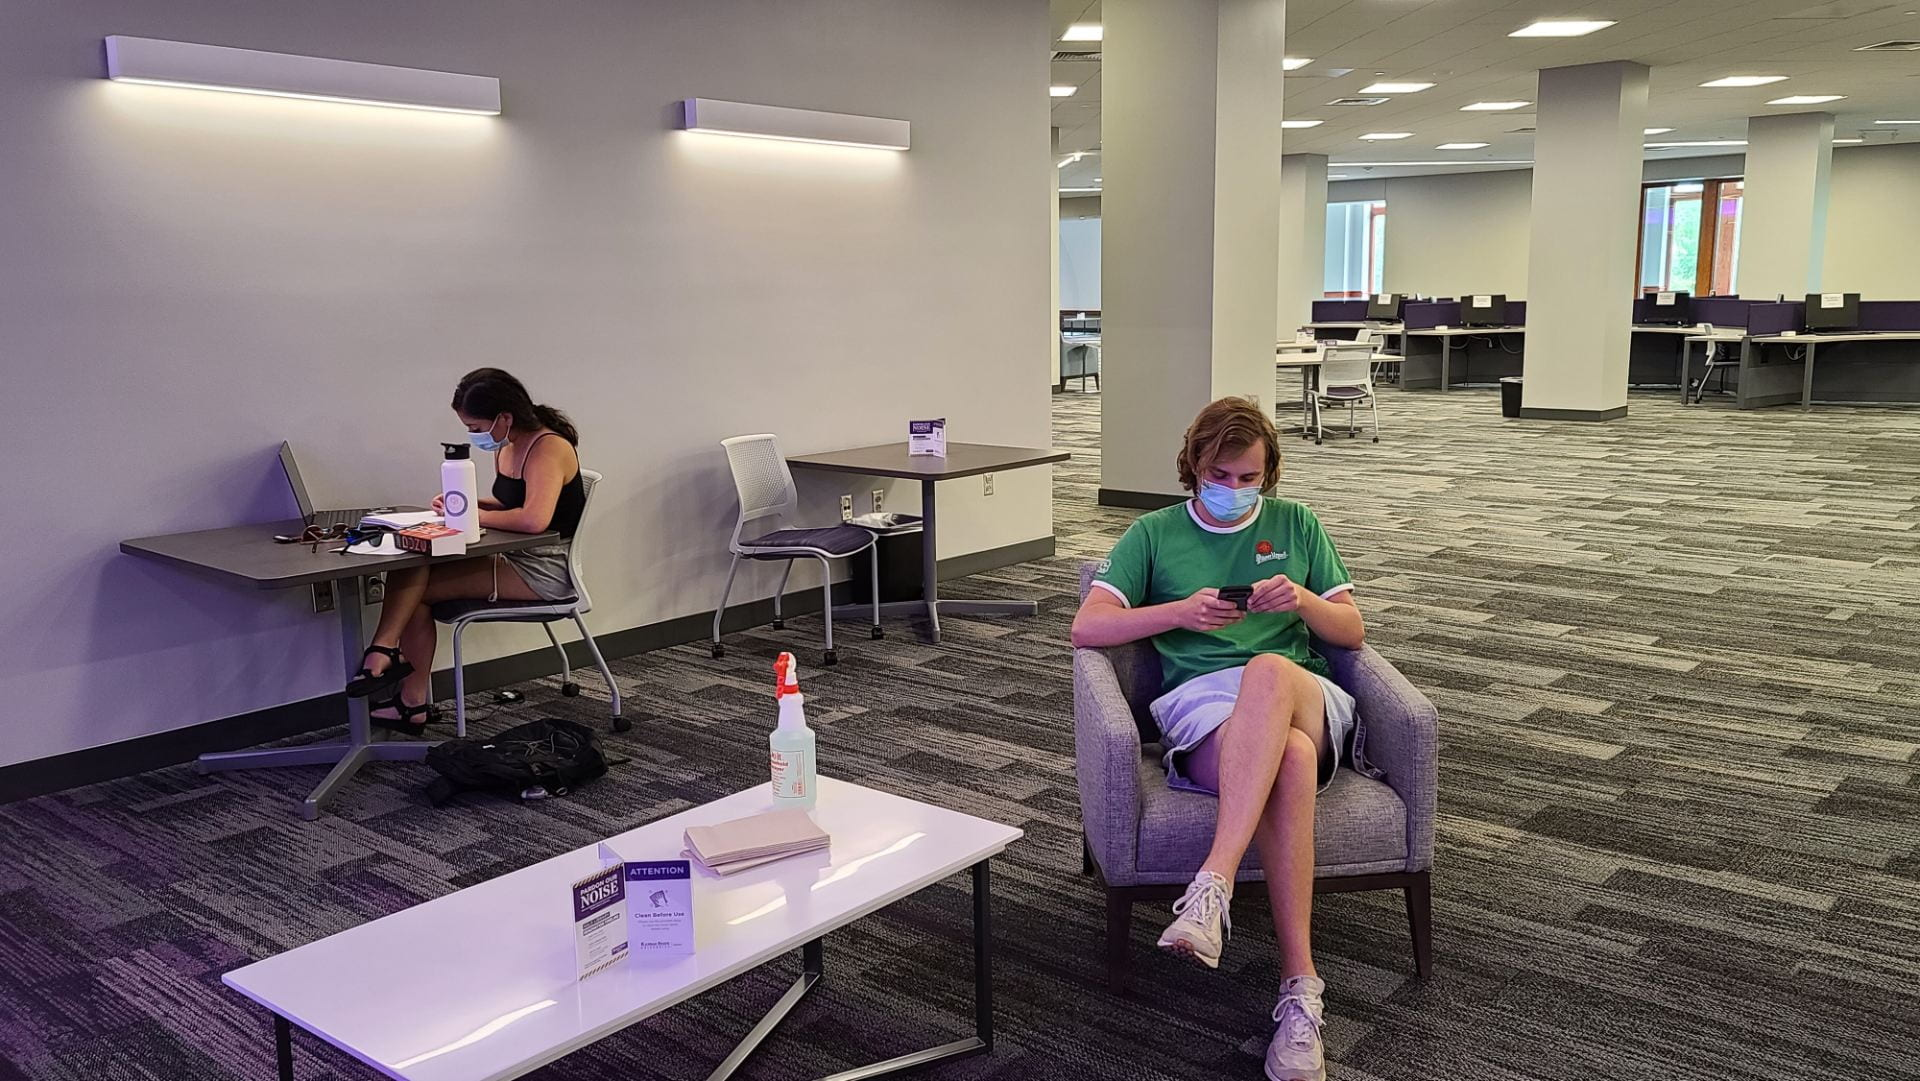 Two students are pictured sitting and studying in the library.